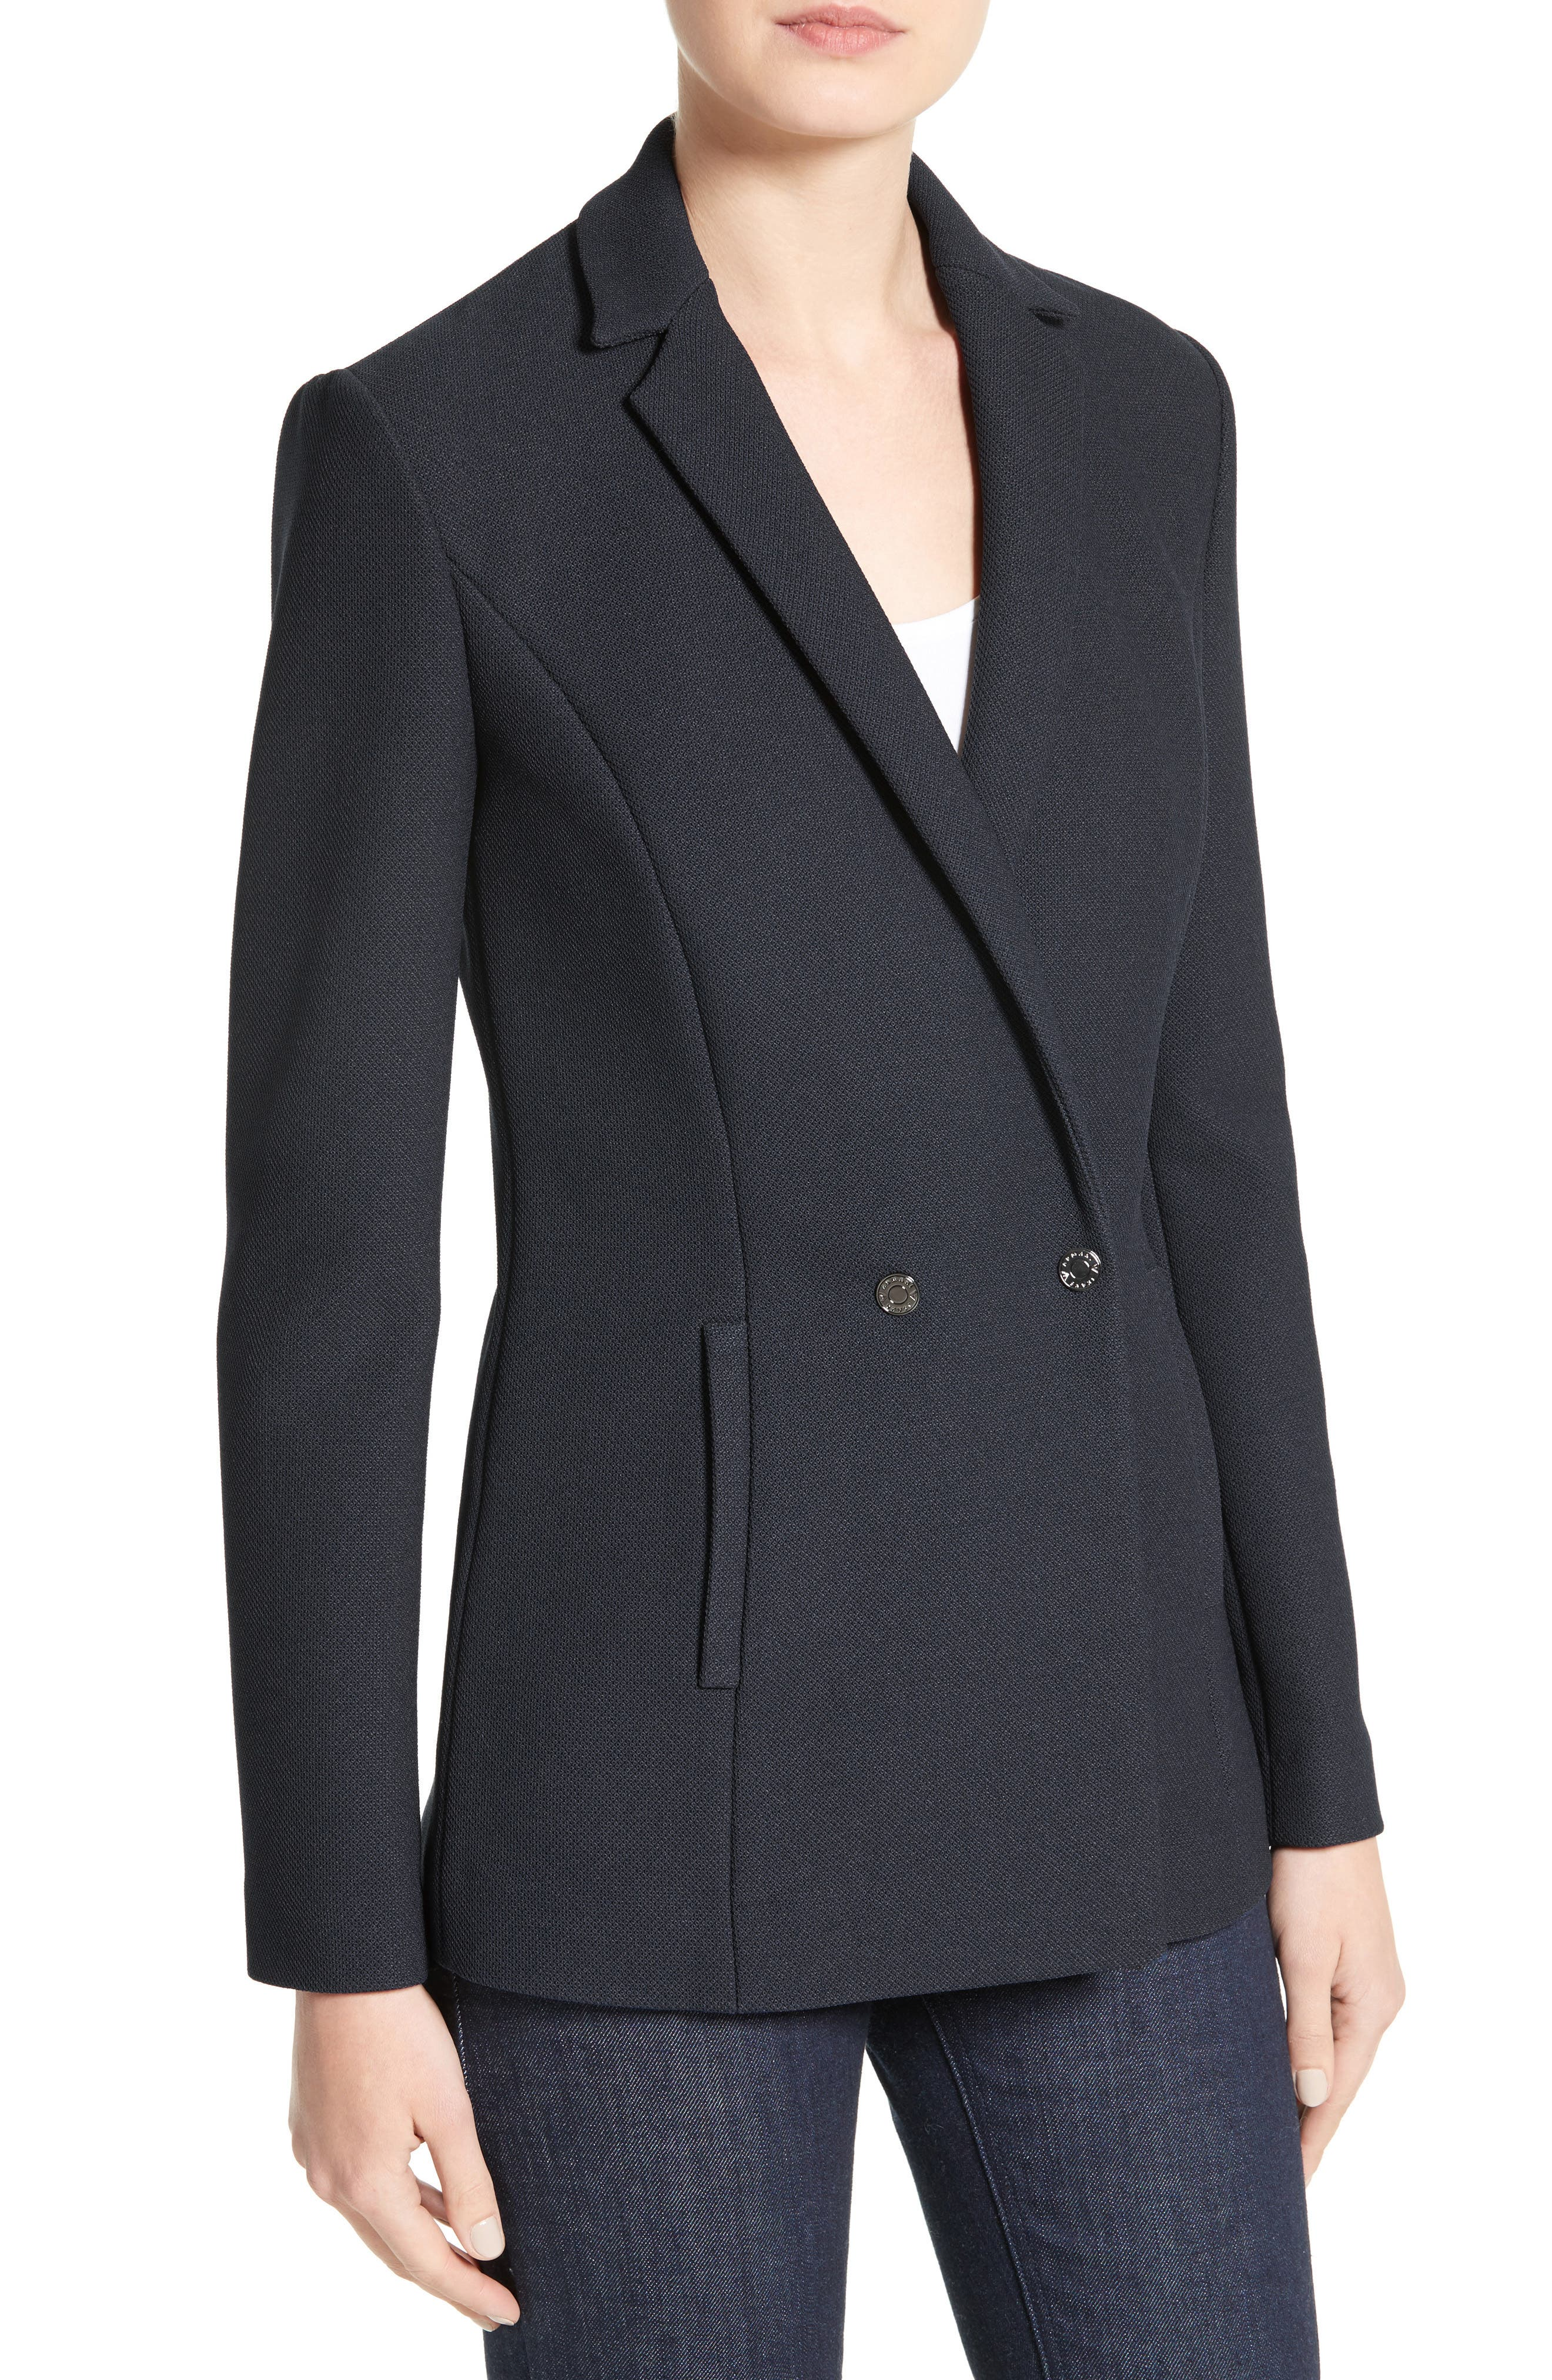 Armani Jeans Piqué Double Breasted Blazer,                             Alternate thumbnail 4, color,                             Navy